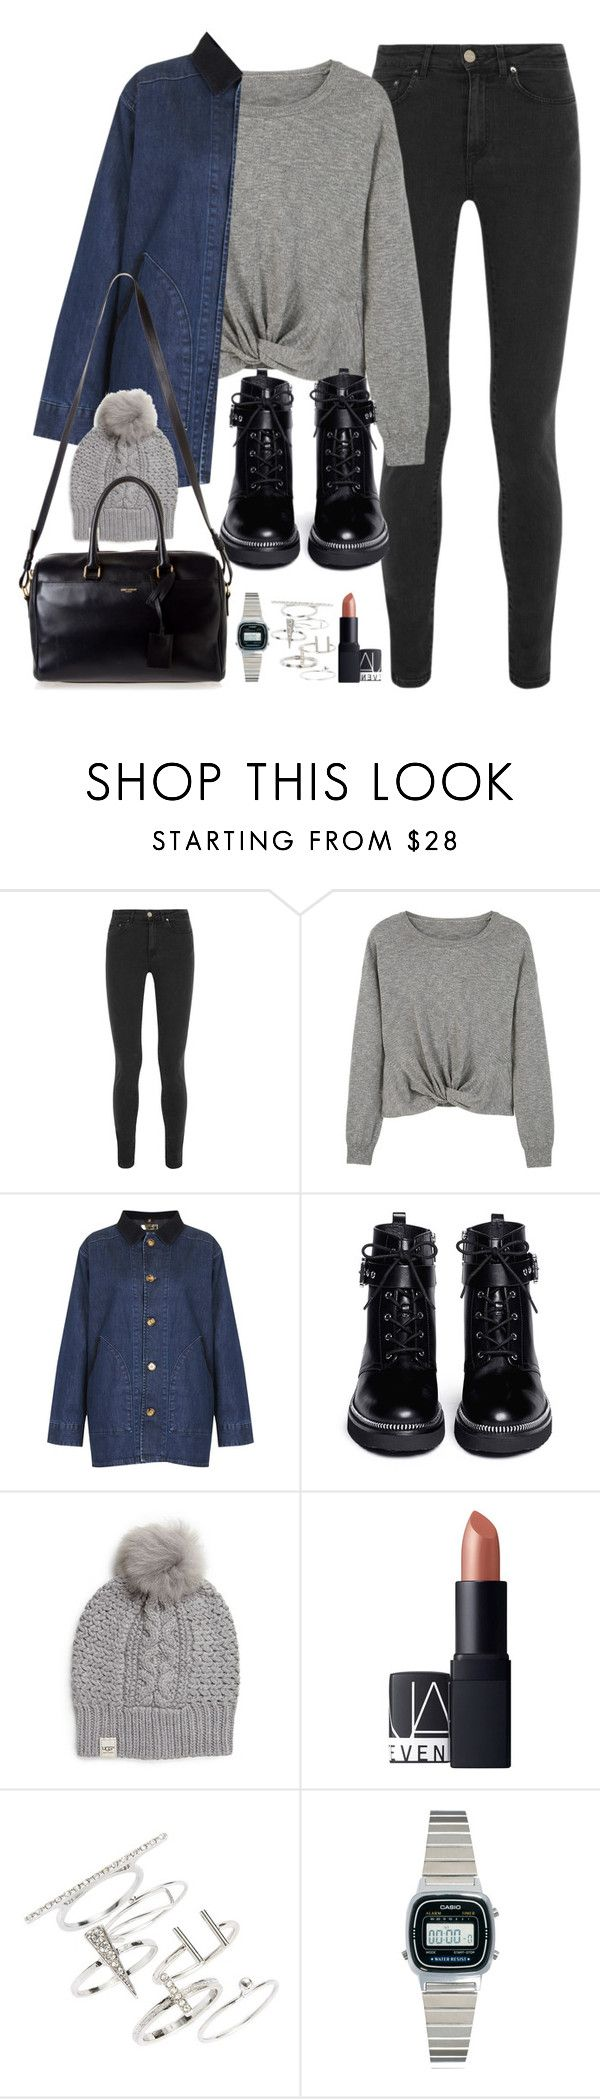 """Untitled #159"" by simonakolevaa ❤ liked on Polyvore featuring Acne Studios, MANGO, Topshop, MICHAEL Michael Kors, UGG Australia, NARS Cosmetics, Casio and Yves Saint Laurent"